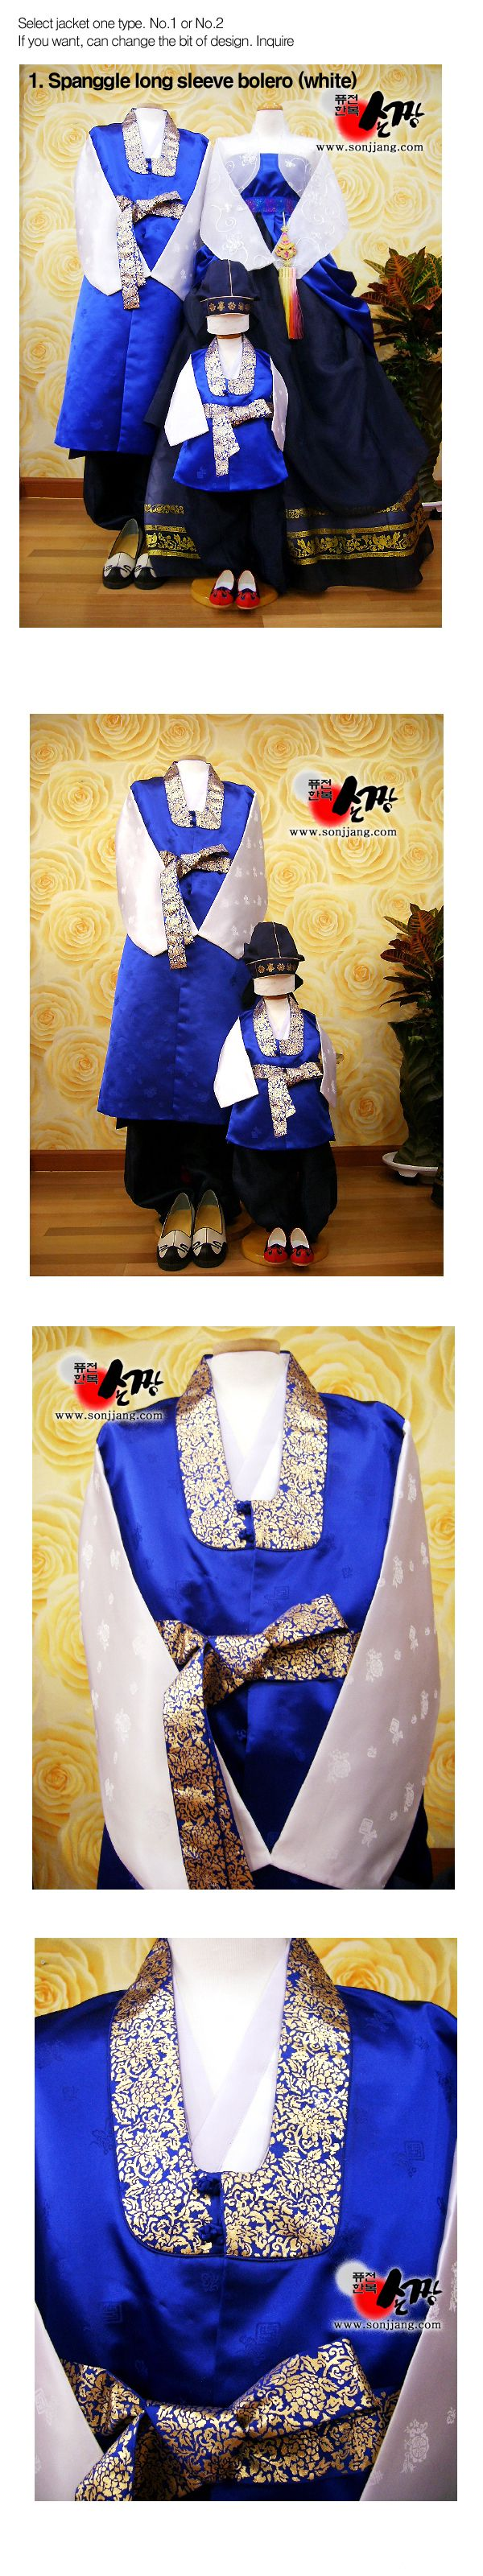 hanbok,korean clothes,korean dress,asian dresses,korean clothes online,korean traditional dress,traditional korean dress,korean clothes onli...